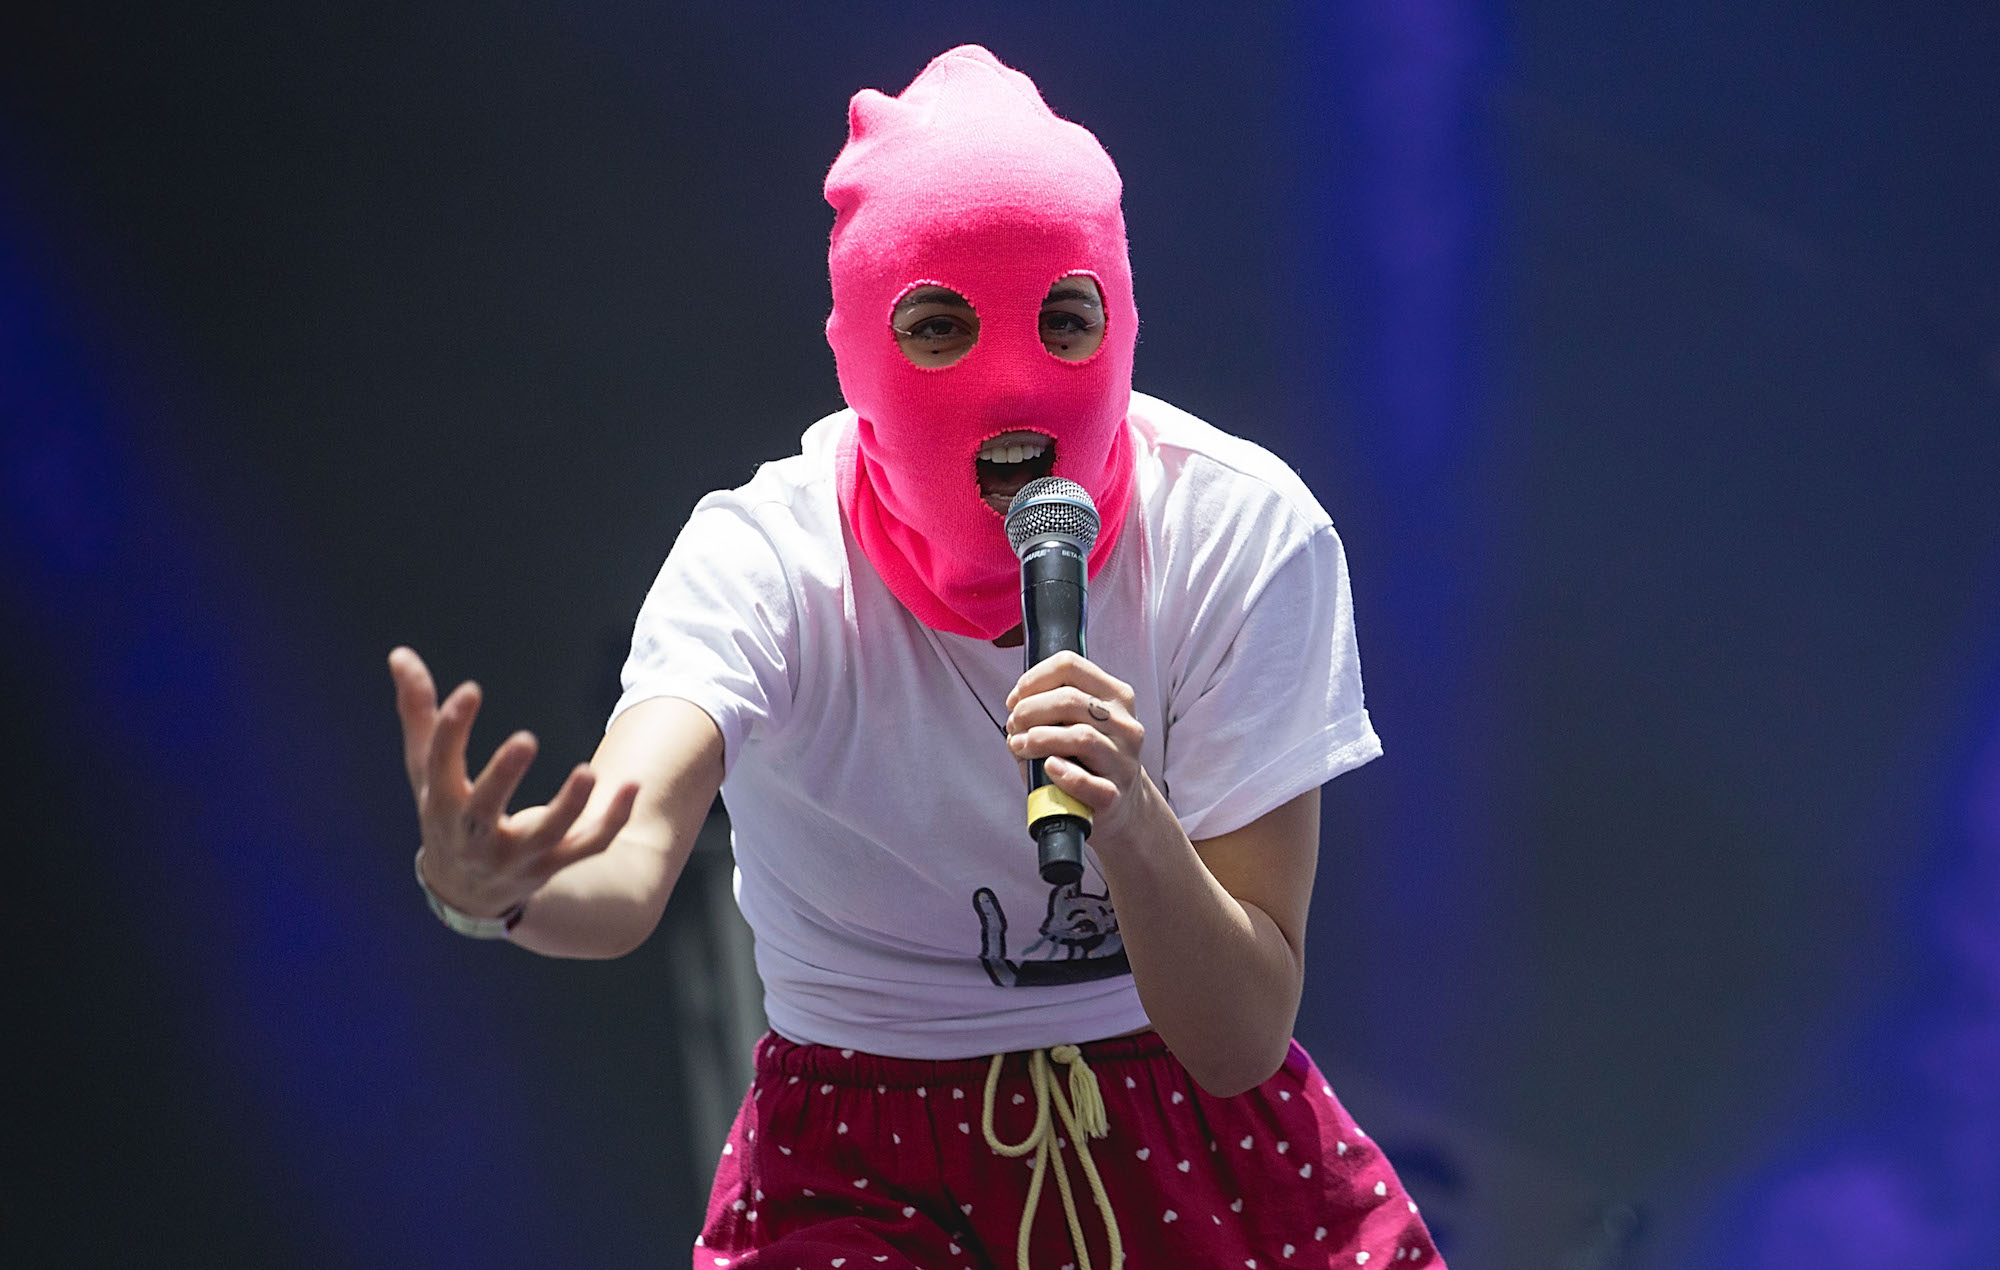 NME Festival blog: Pussy Riot are in defiant mood at Chicago's Riot Fest after member's suspected poisoning